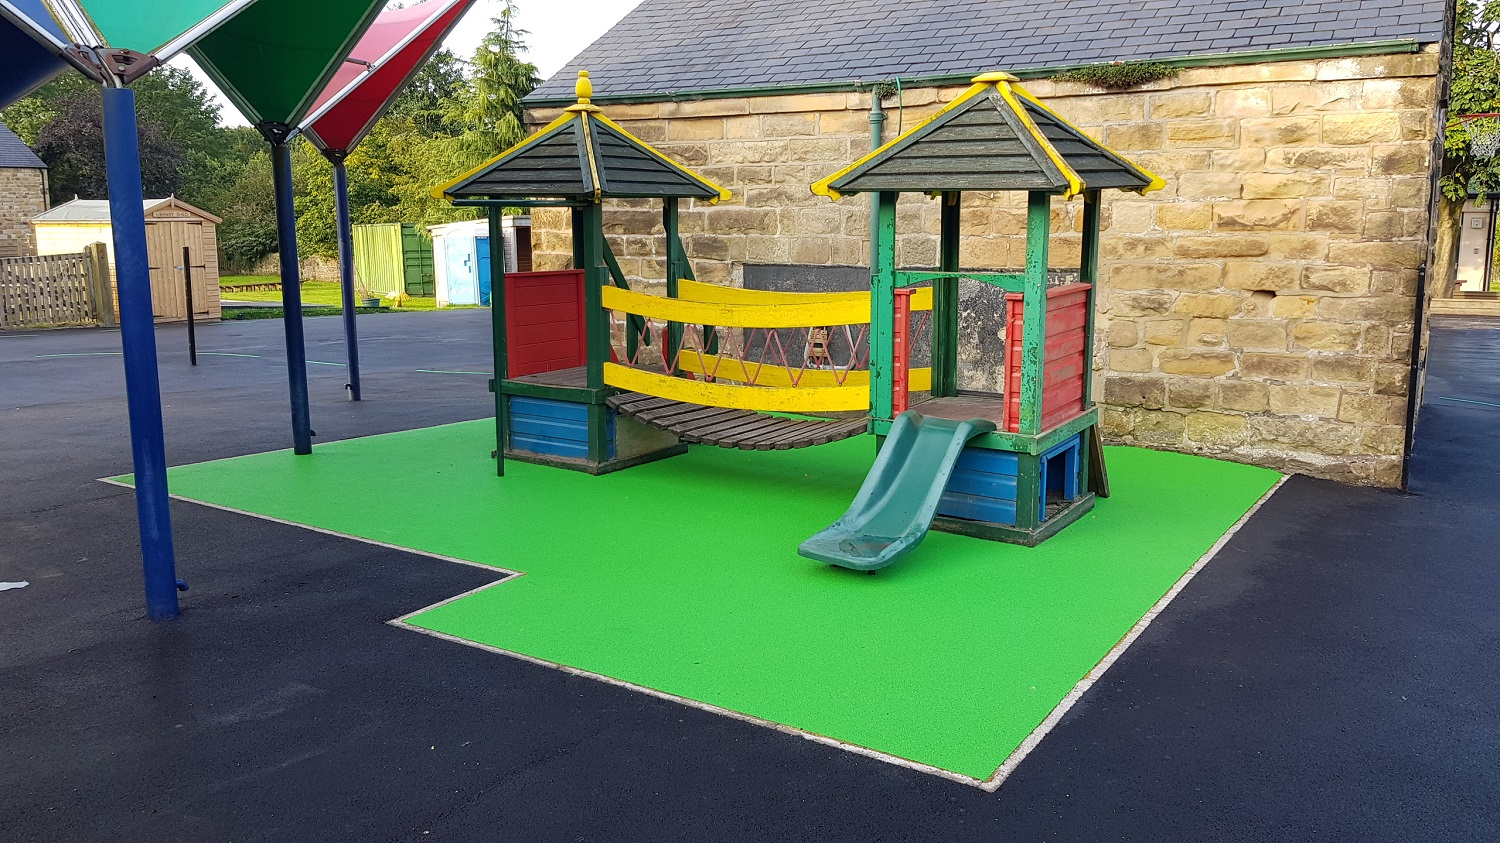 P6 Soft Play Area Surfacing at Ashover Primary School in Ashover